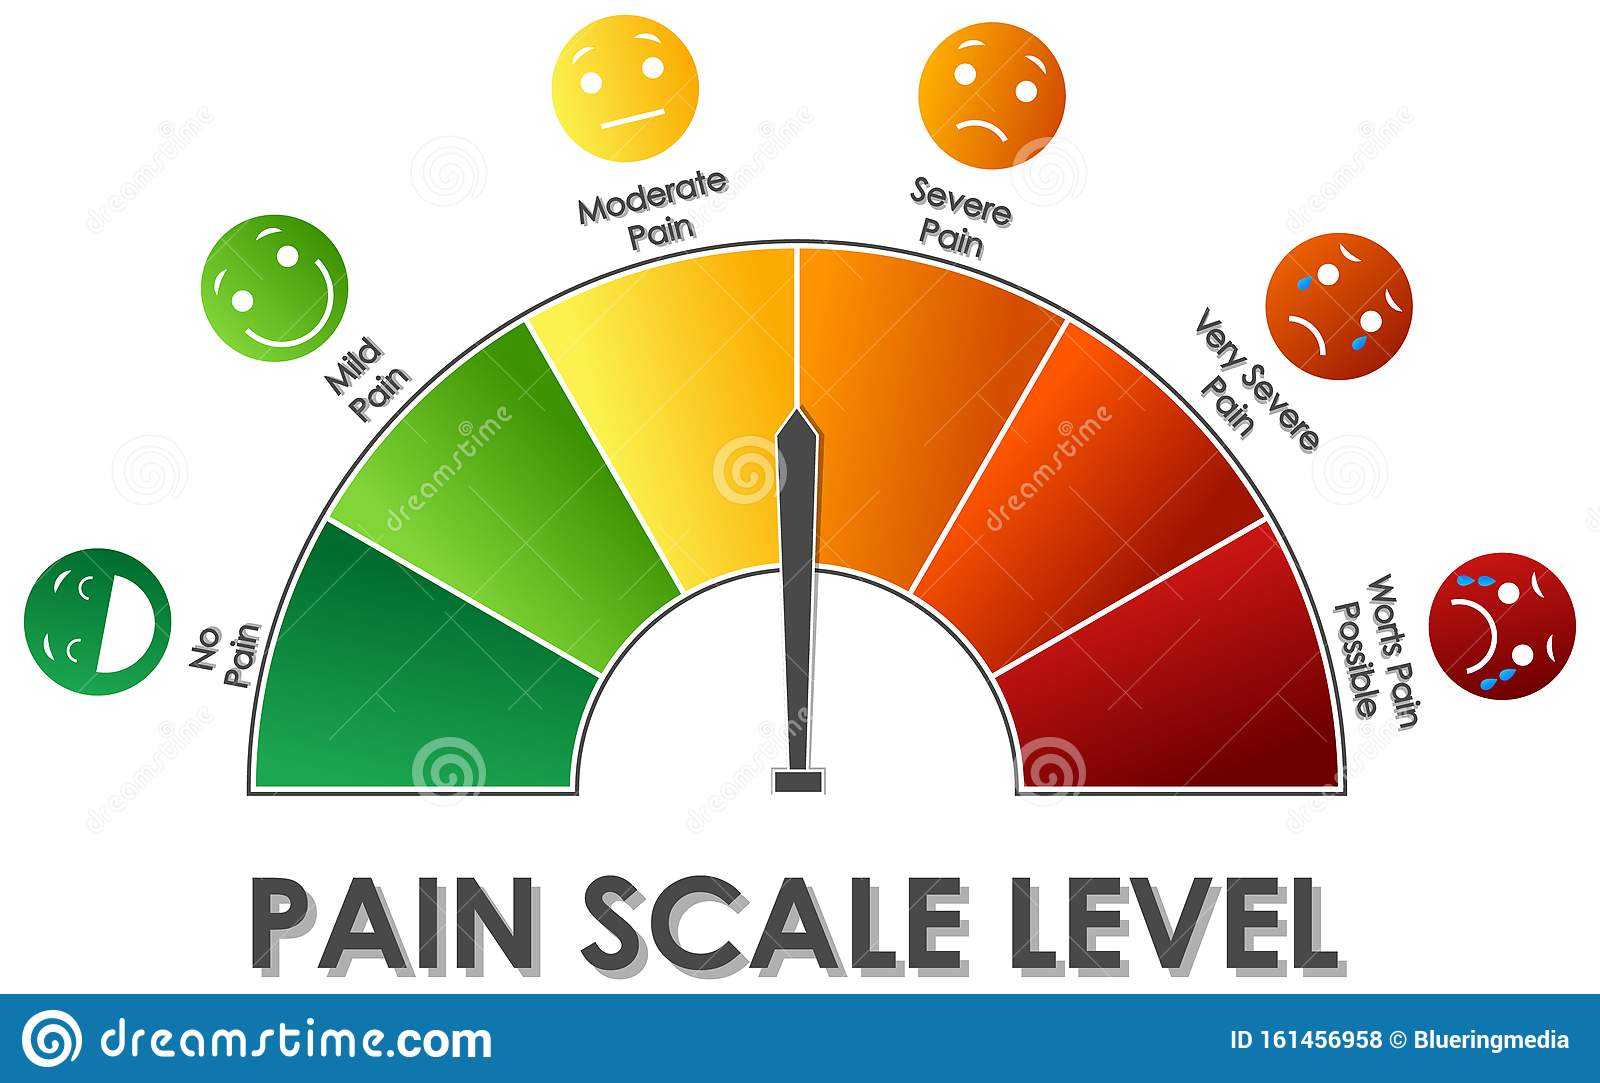 Diagram Showing Pain Scale Level With Different Colors Stock Illustration